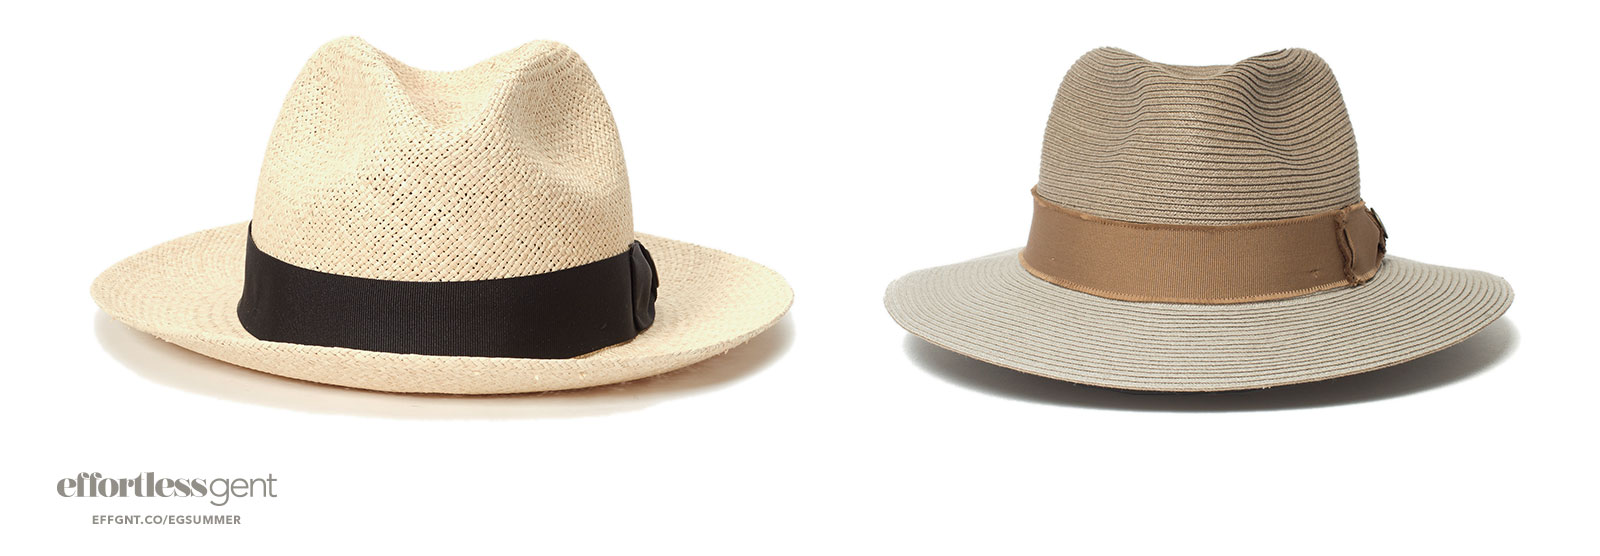 mens summer hats and fedoras